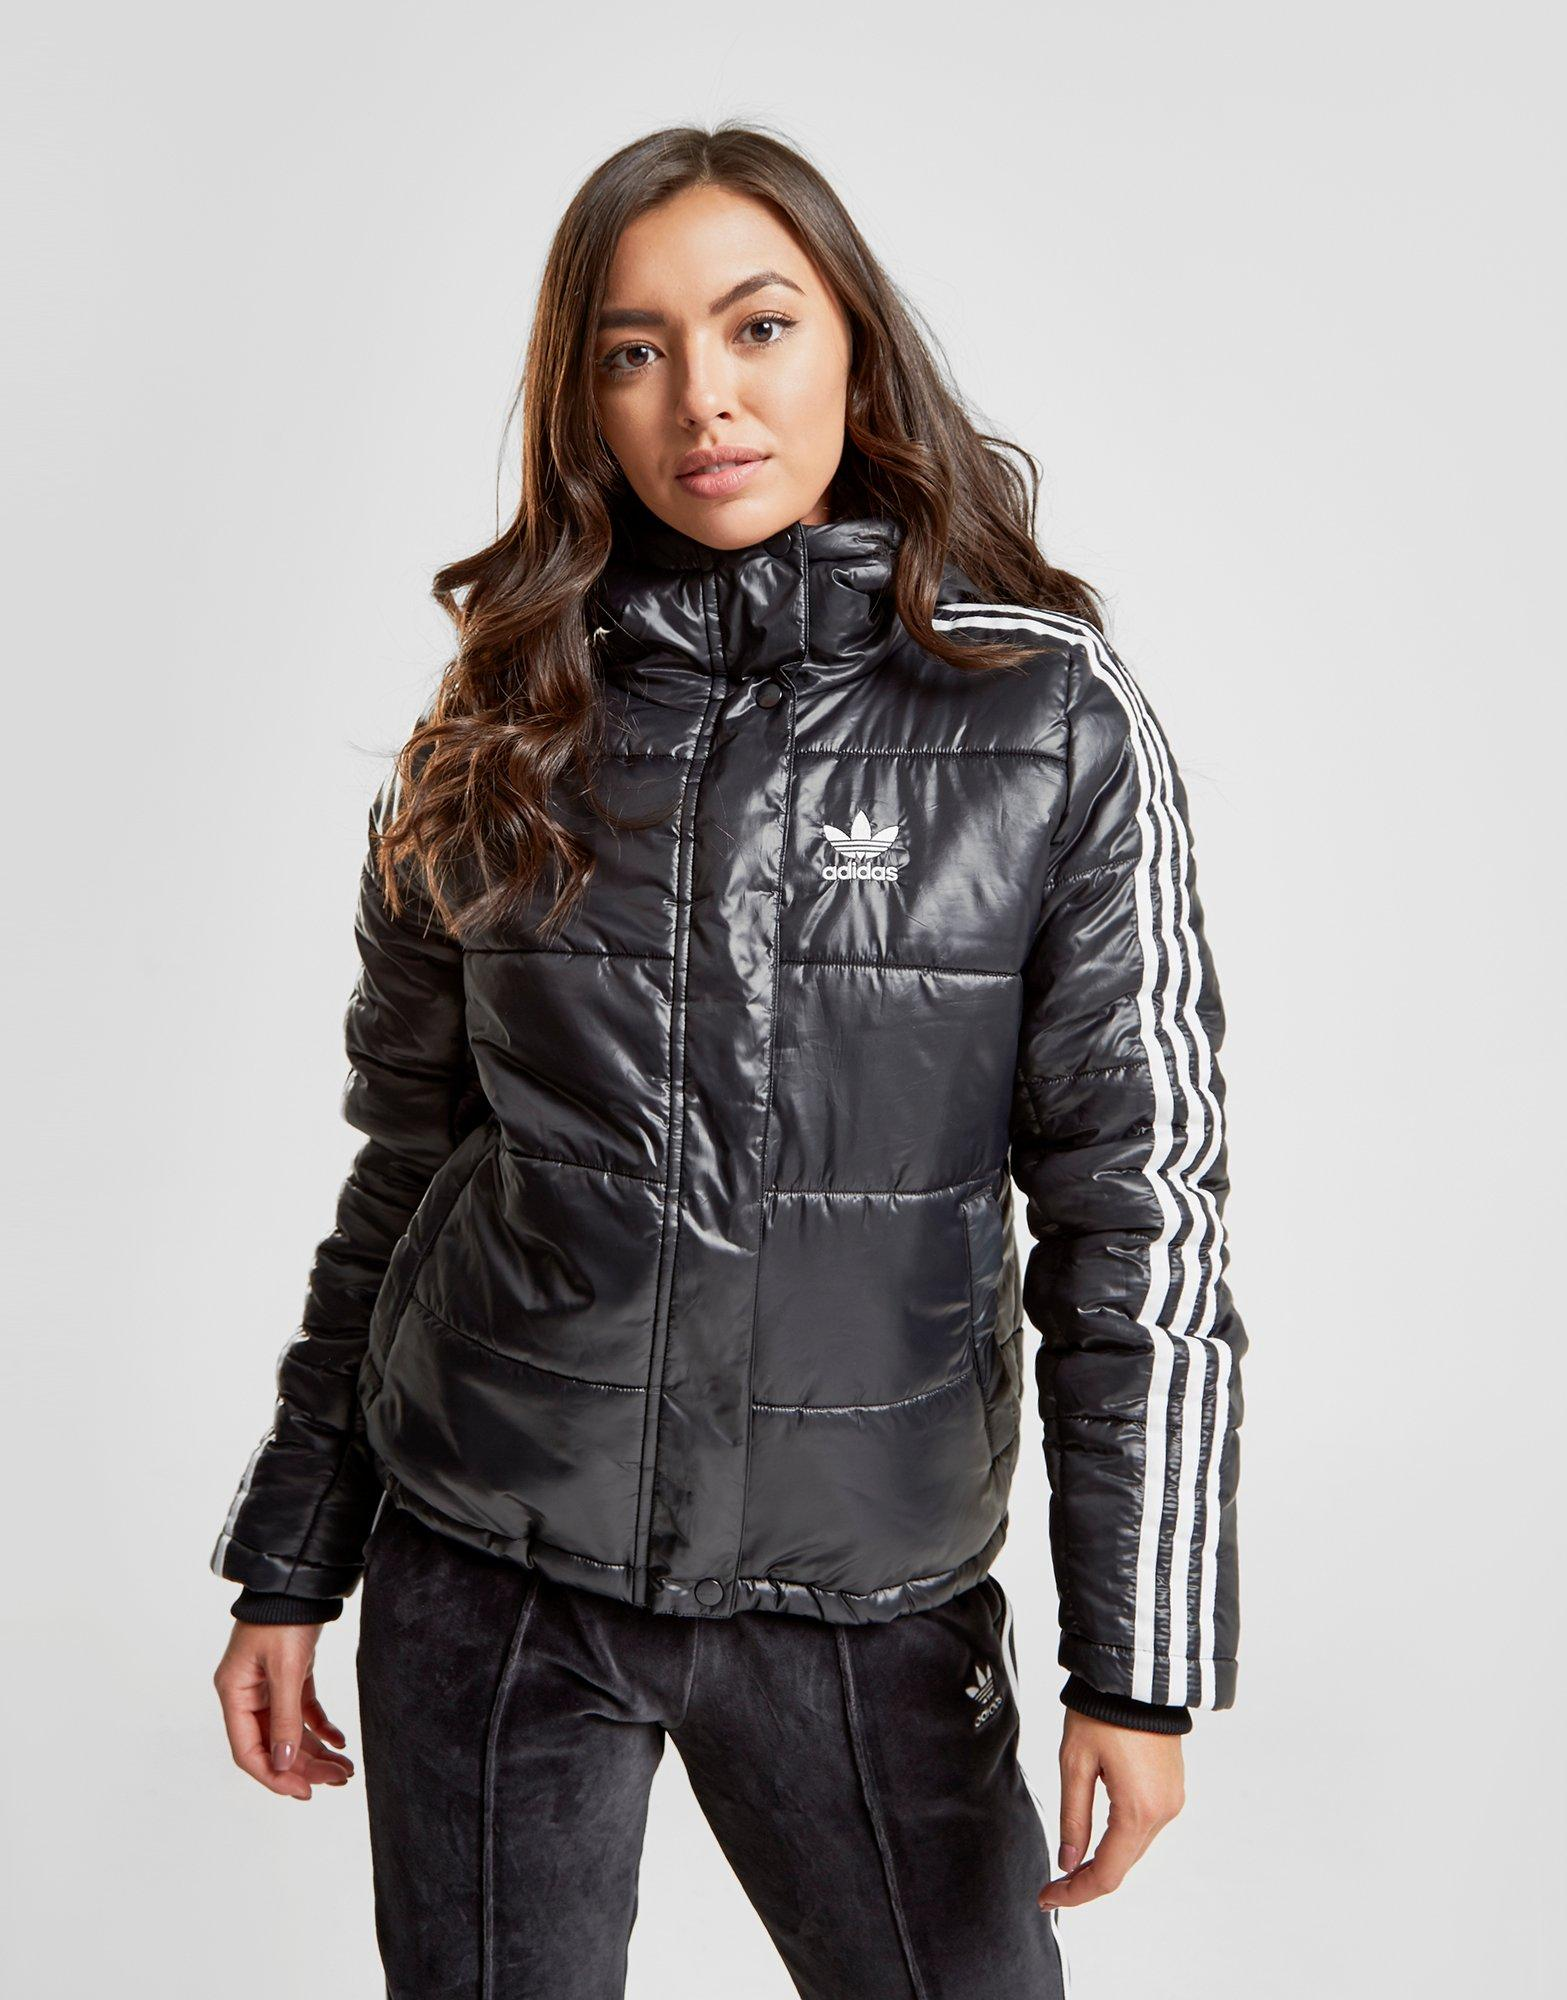 Details about New adidas Originals Women's 3 Stripes Oversized Padded Jacket Black